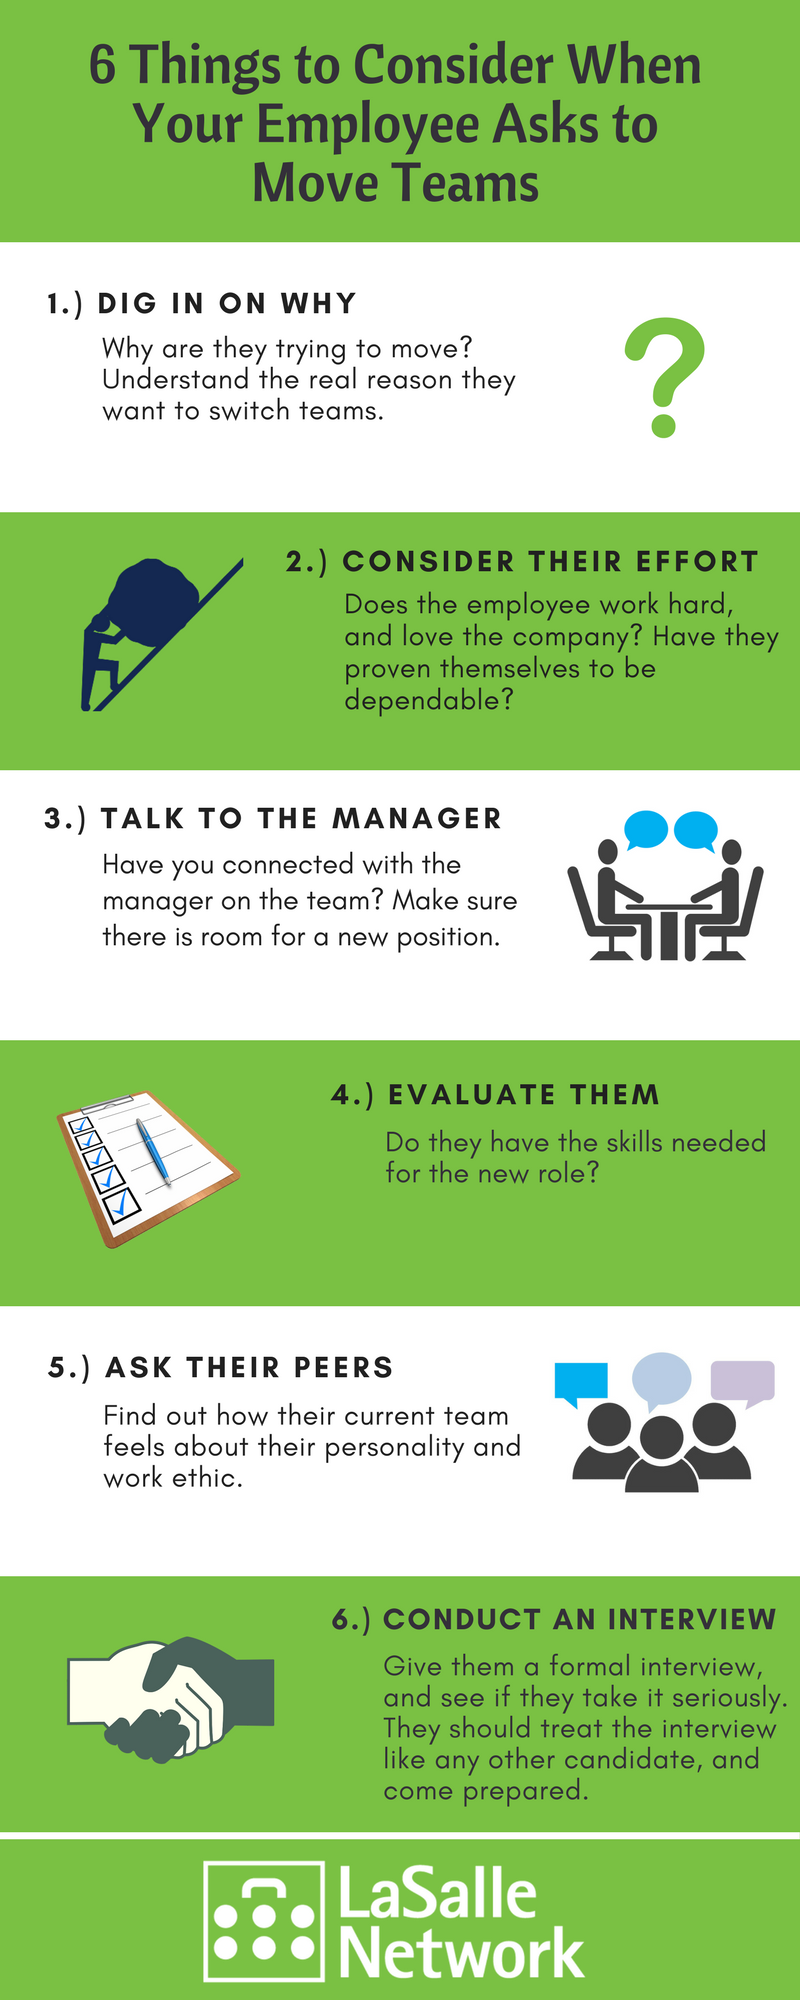 6 Things to Consider When Moving Teams Infographic